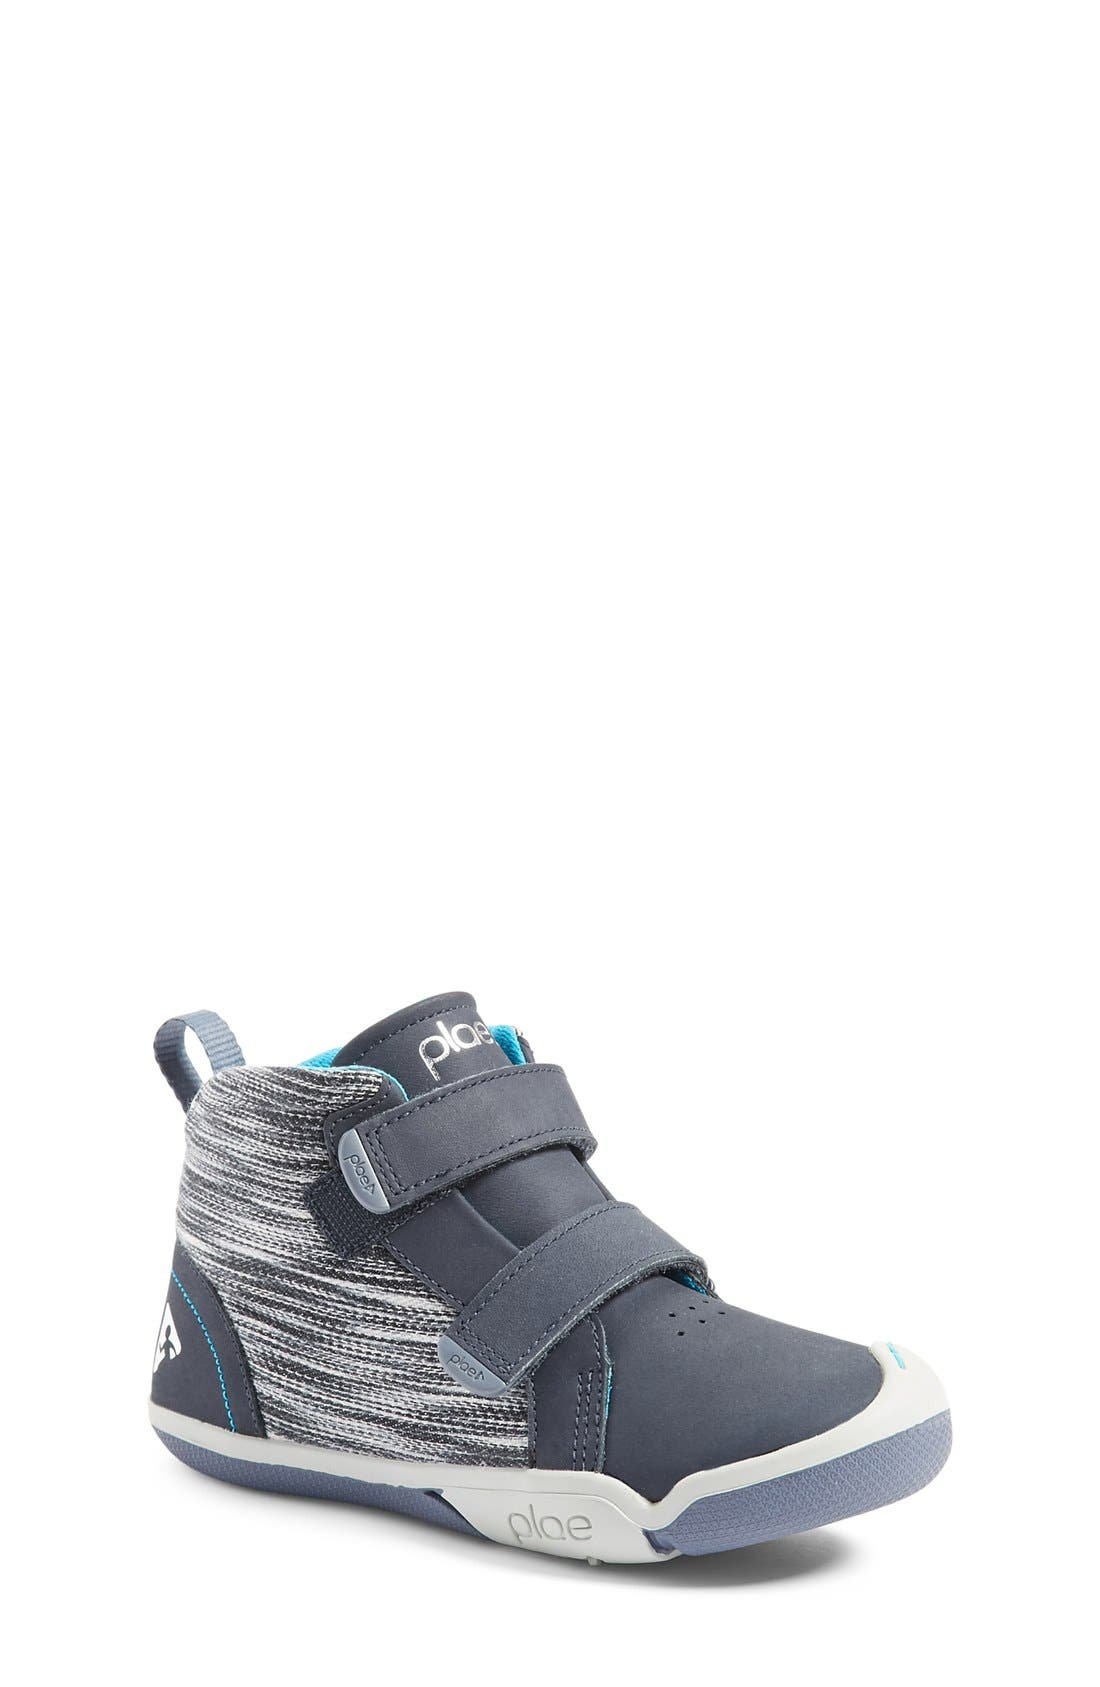 Max Customizable High Top Sneaker,                         Main,                         color, LEATHER WIND